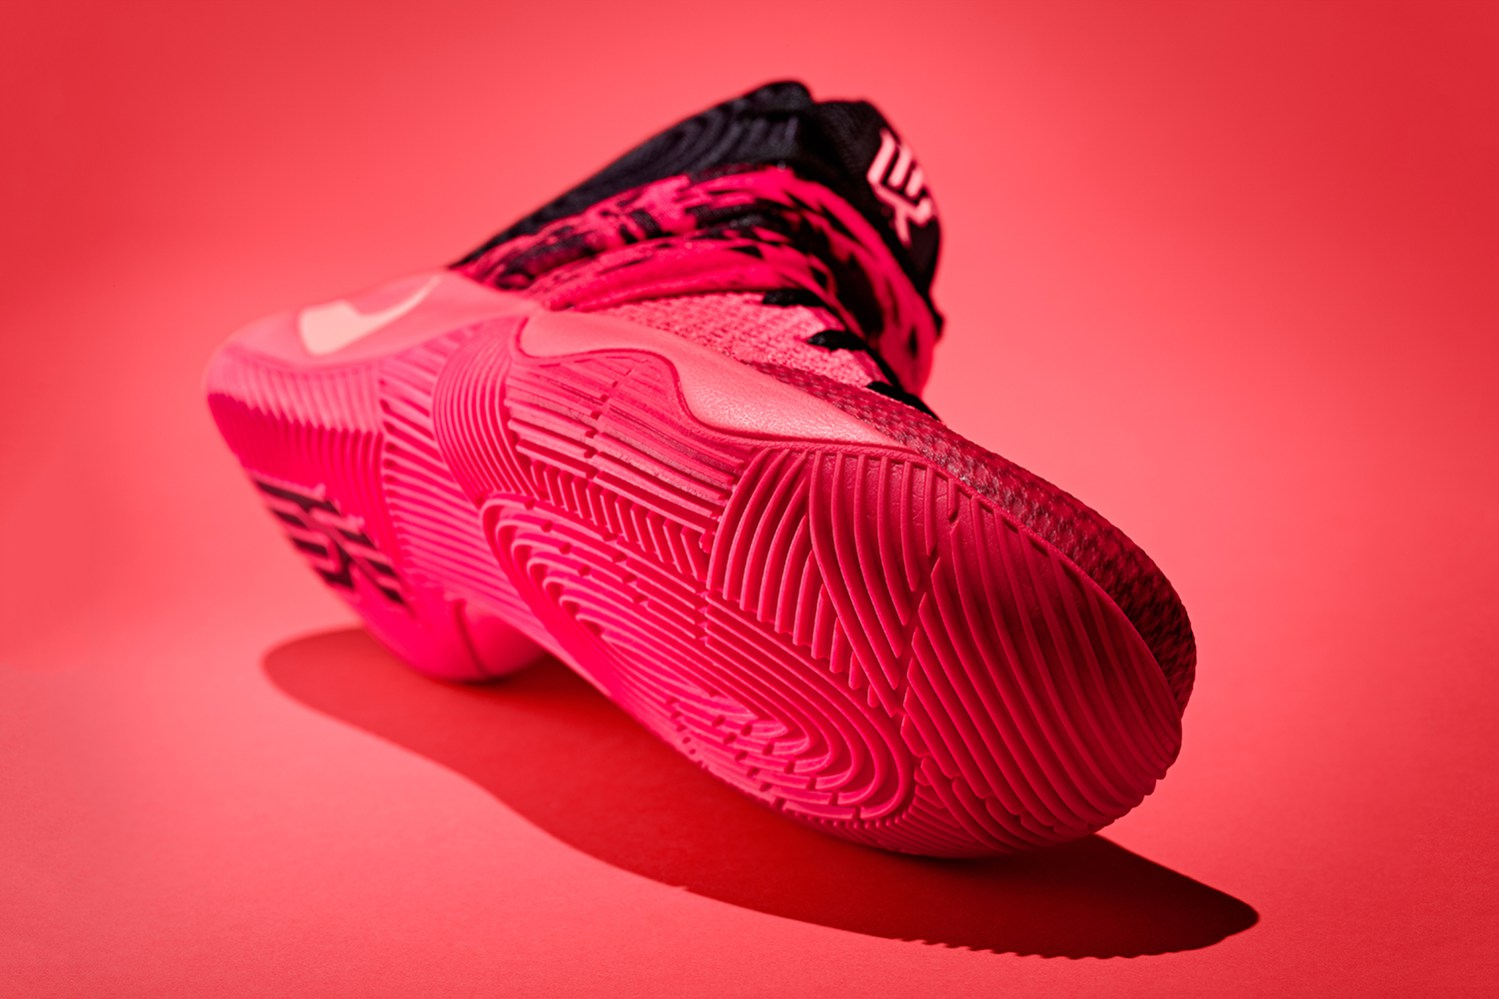 9c8529c899ac Kyrie Irving and Nike Debut the Physics Defying Nike Kyrie 2